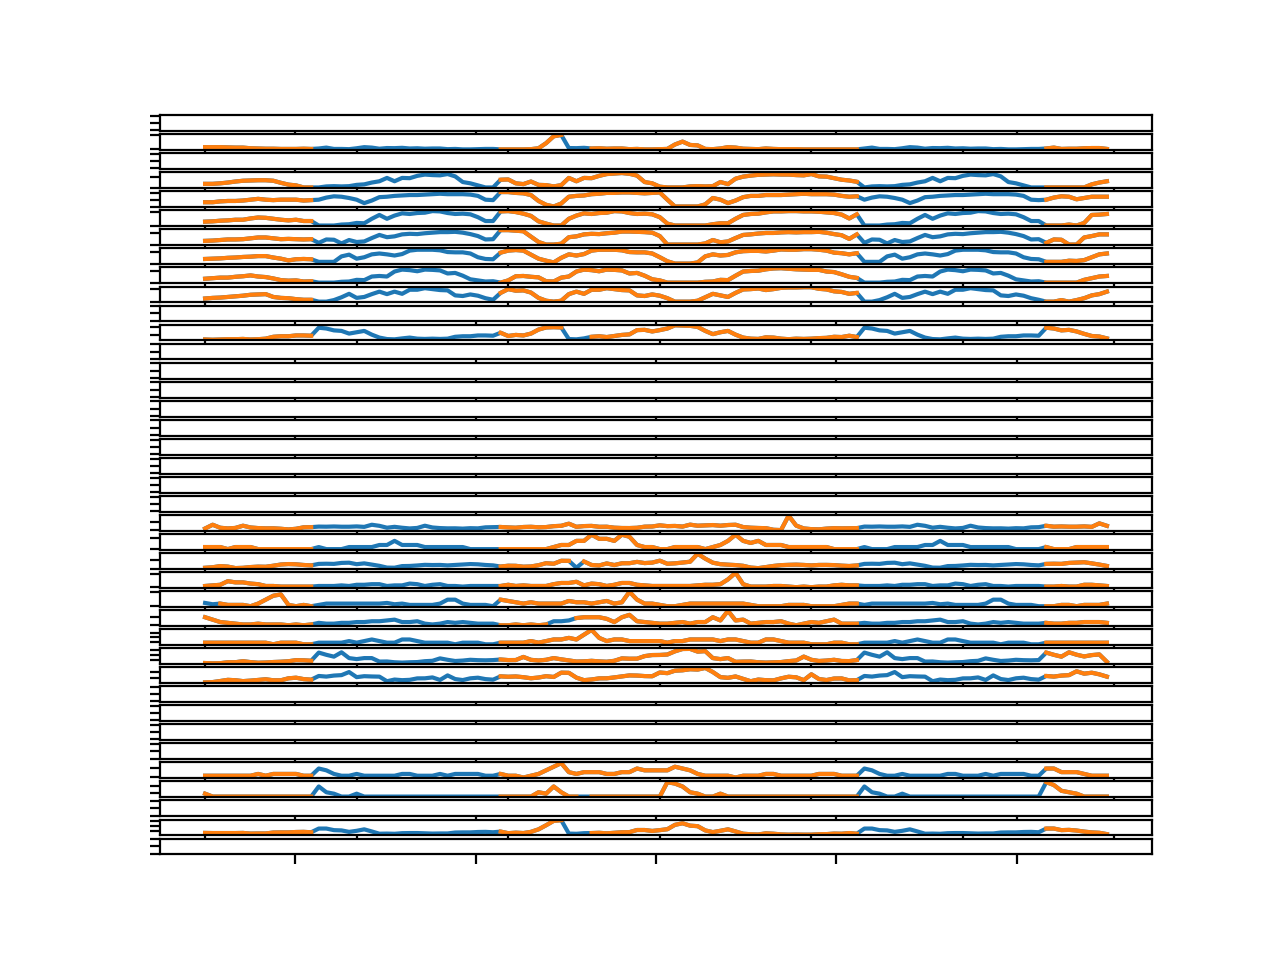 Line Plots for All Targets in Chunk 4 With Imputed Missing Values